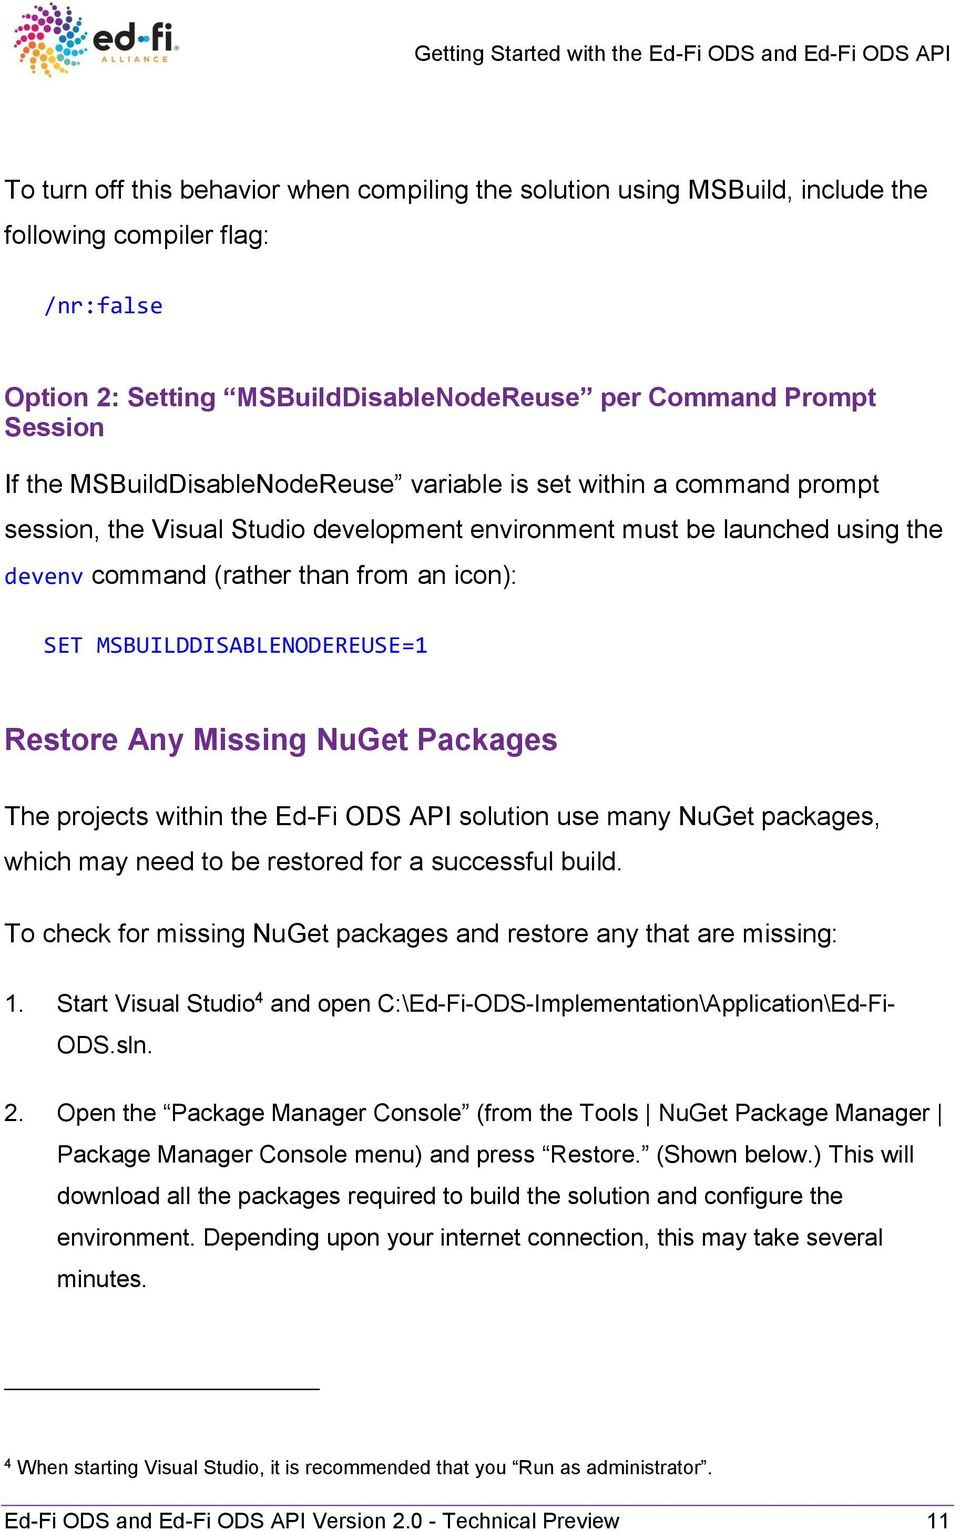 MSBUILDDISABLENODEREUSE=1 Restore Any Missing NuGet Packages The projects within the Ed-Fi ODS API solution use many NuGet packages, which may need to be restored for a successful build.